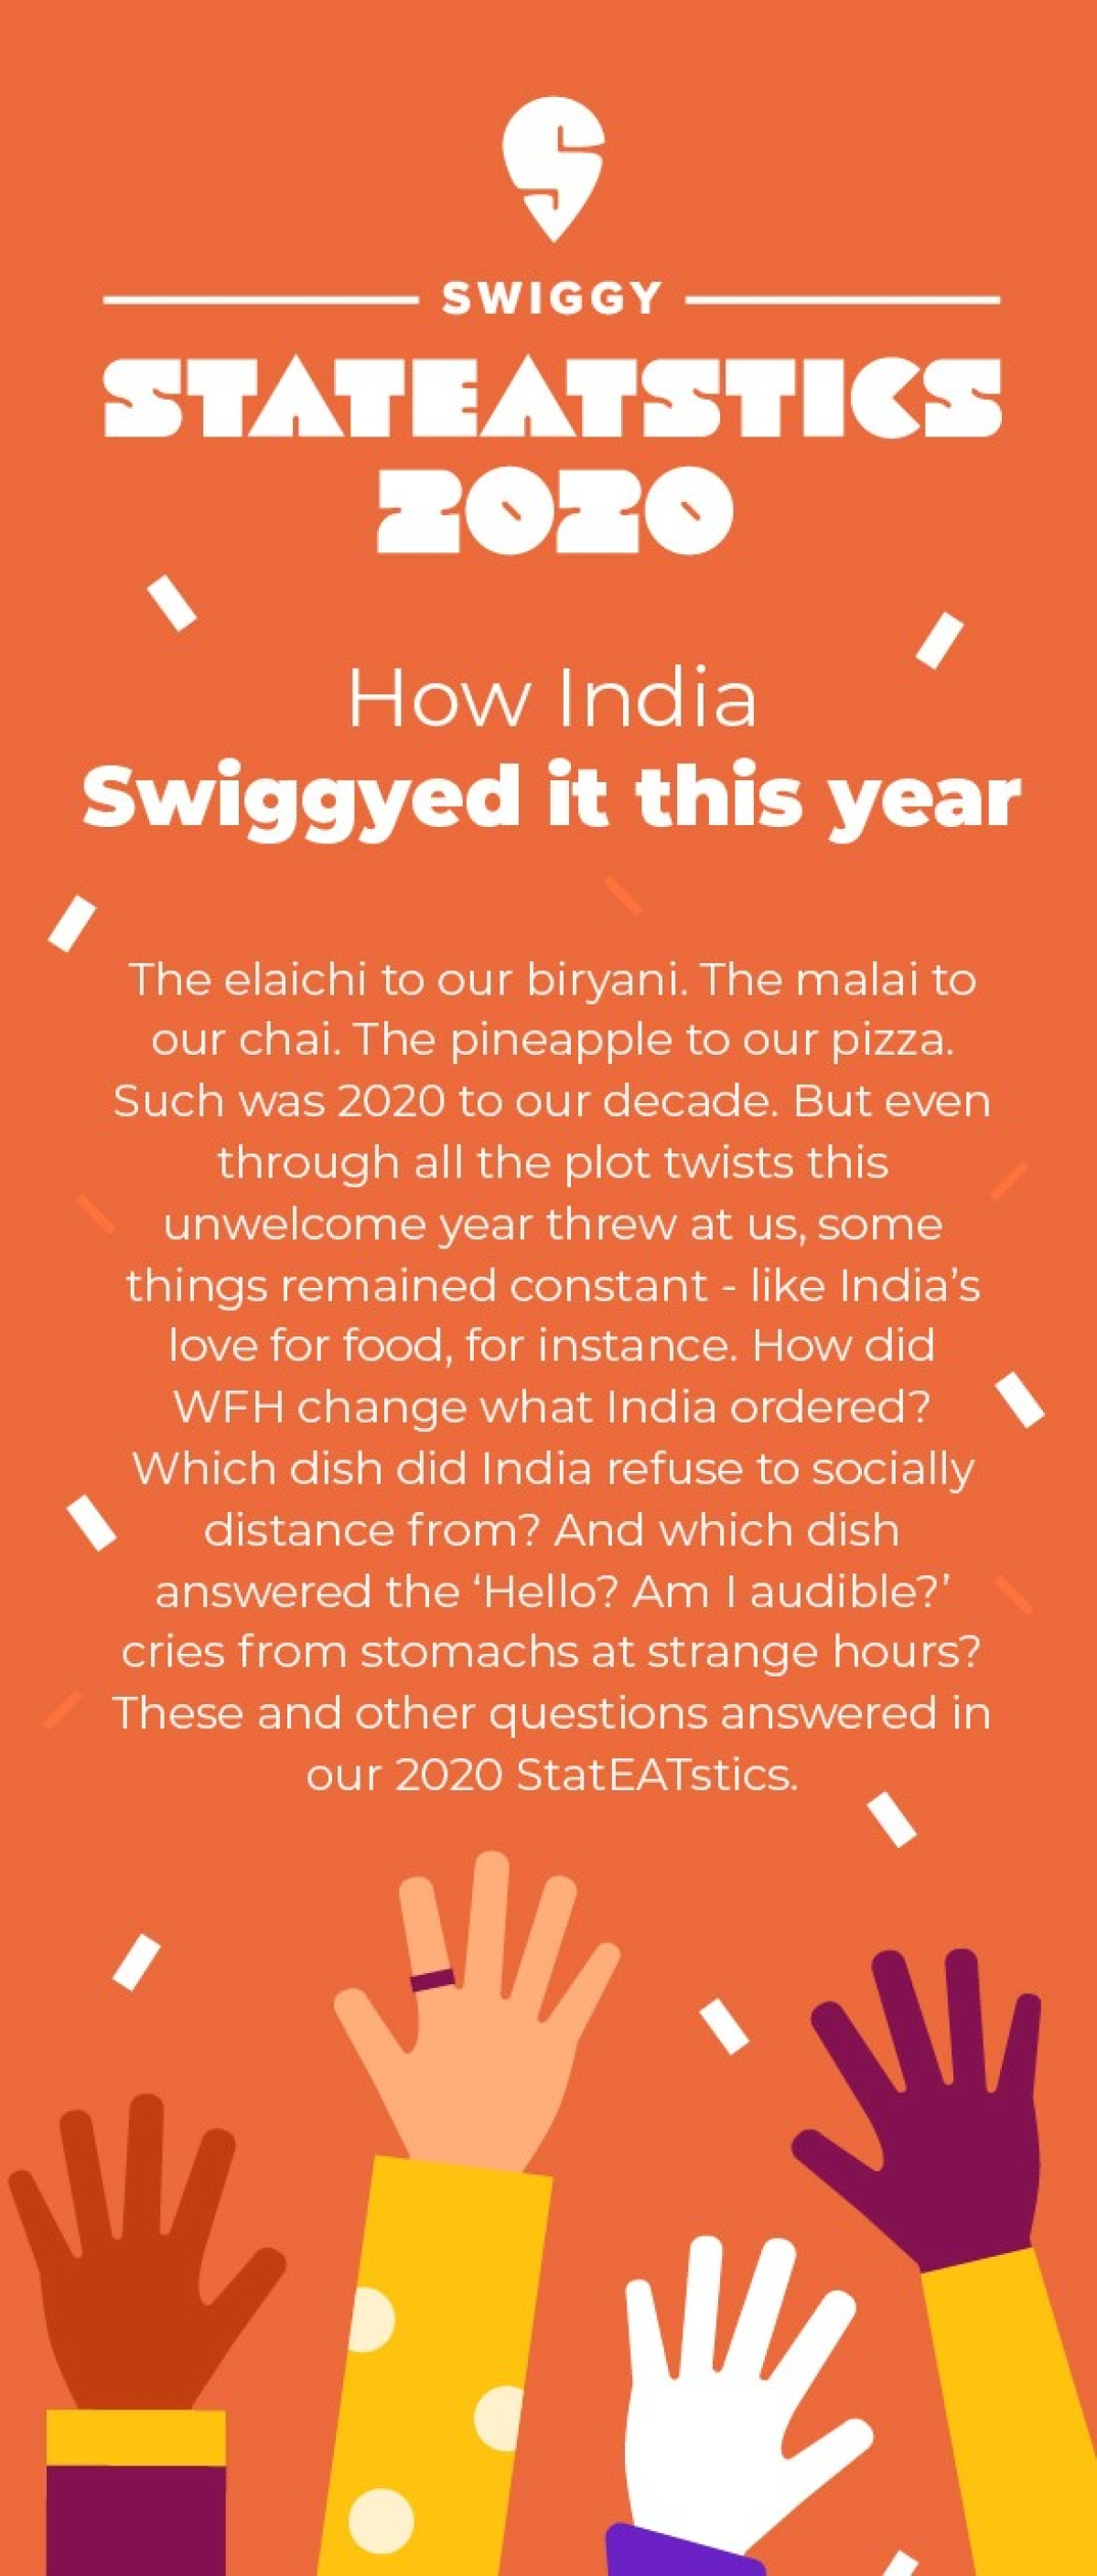 Biryani was ordered more than once every second in 2020: Swiggy StatEATstics 2020